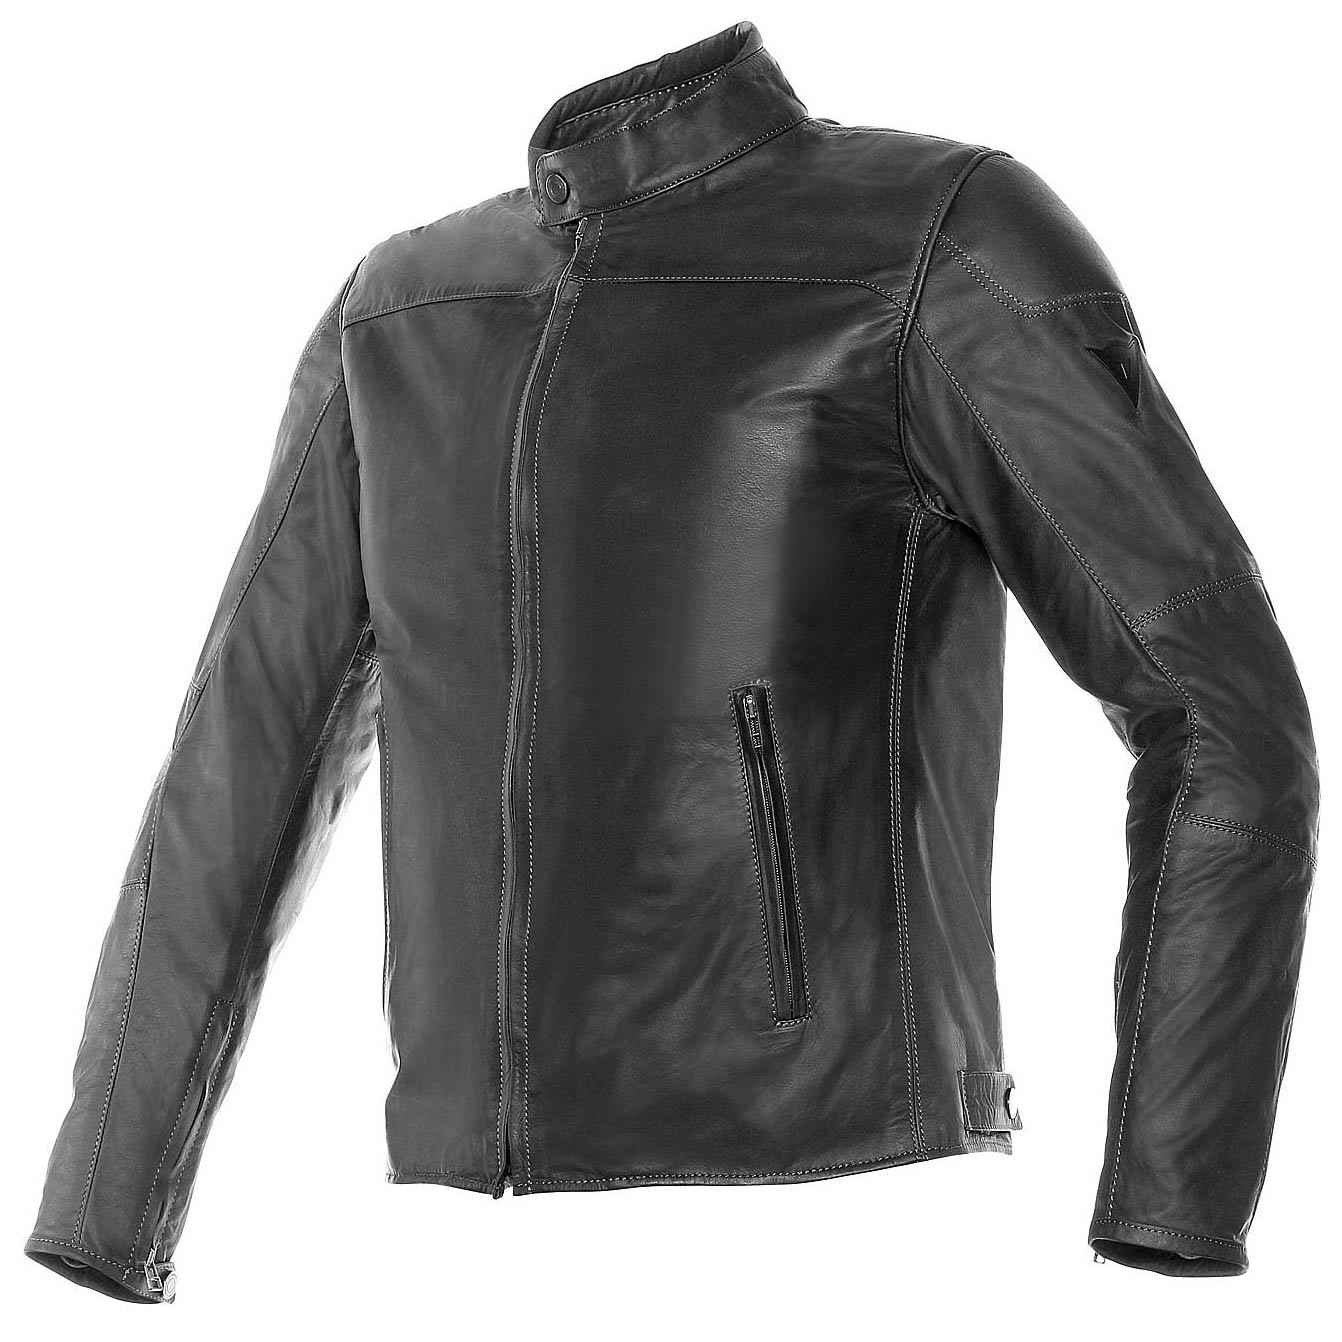 blouson mike pelle dainese blouson et veste cuir blouson et veste moto japauto. Black Bedroom Furniture Sets. Home Design Ideas